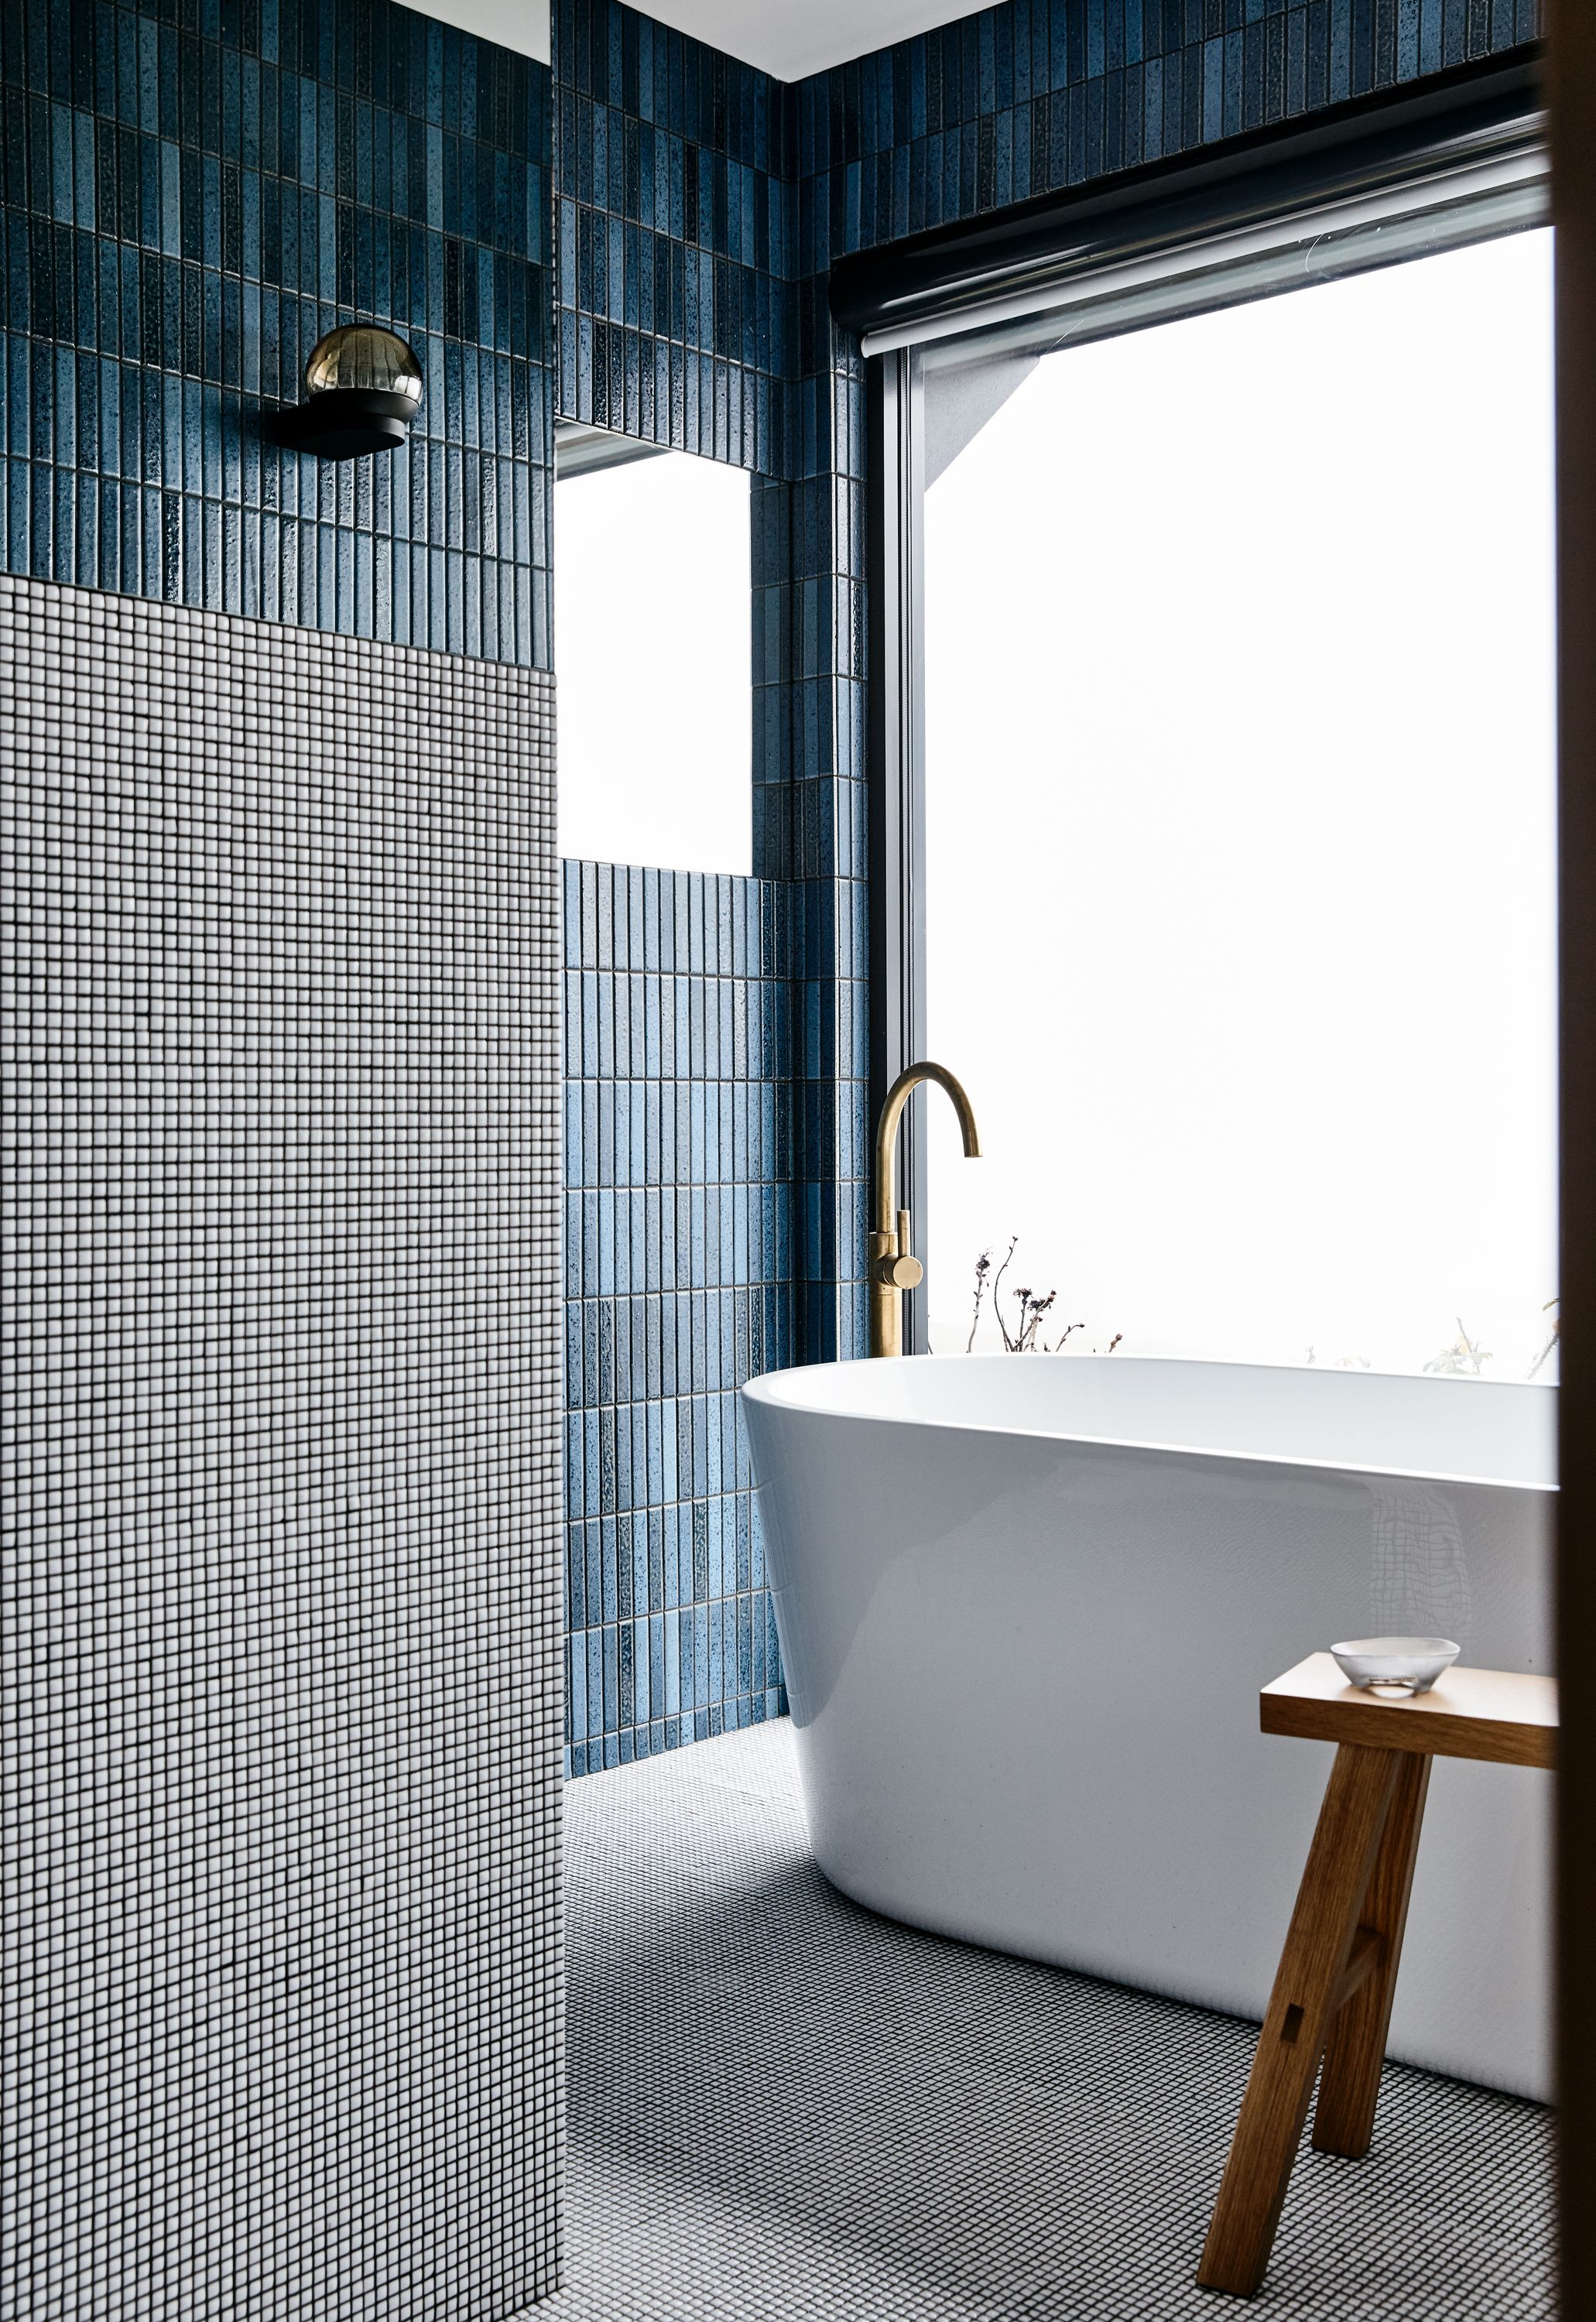 Best bathroom interior call  for the best prices in the usa on hardwood